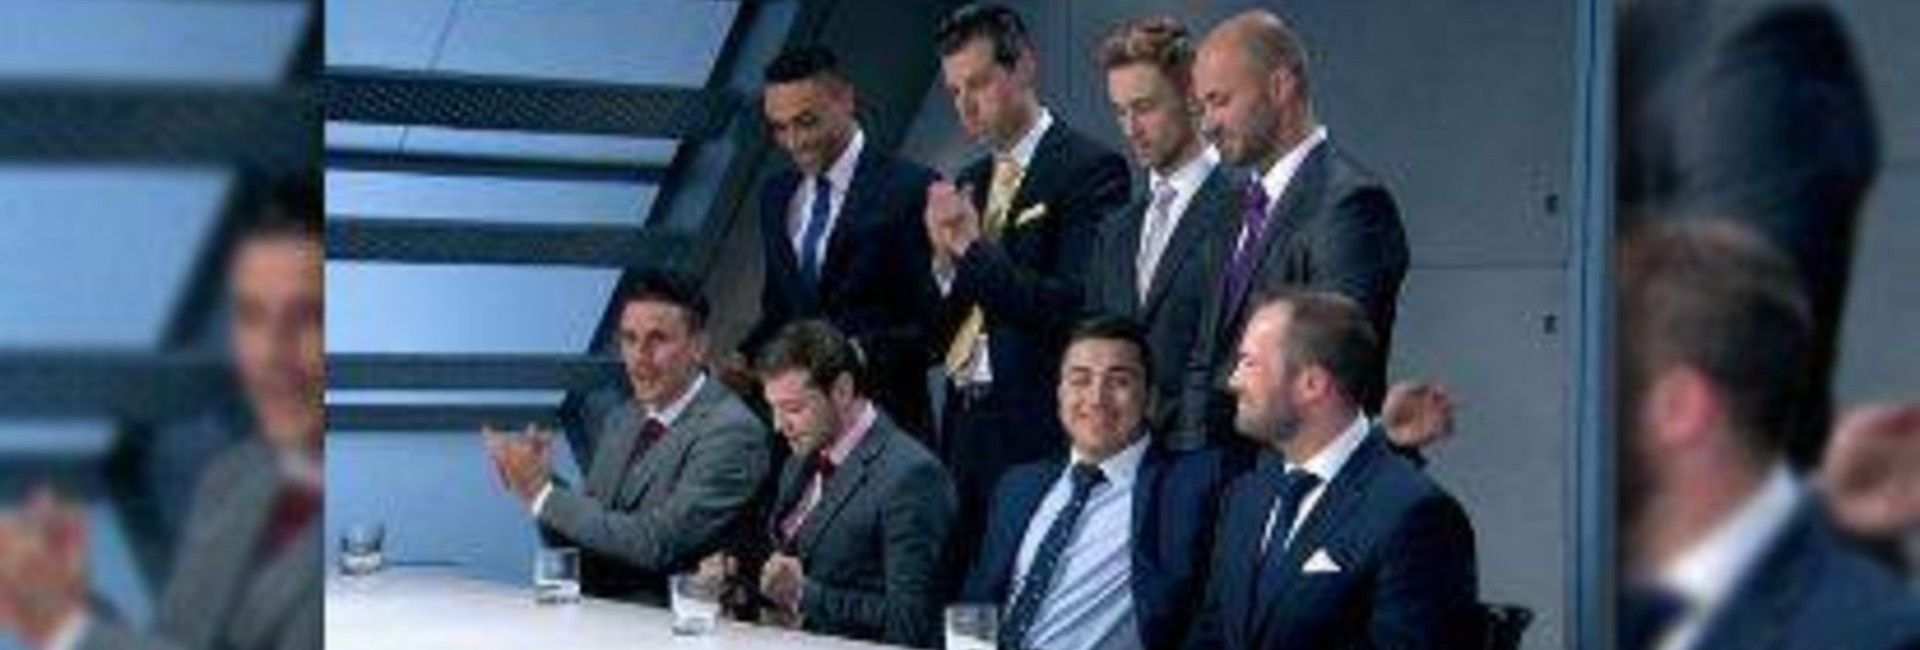 5 challenges won with teamwork on the apprentice 2015